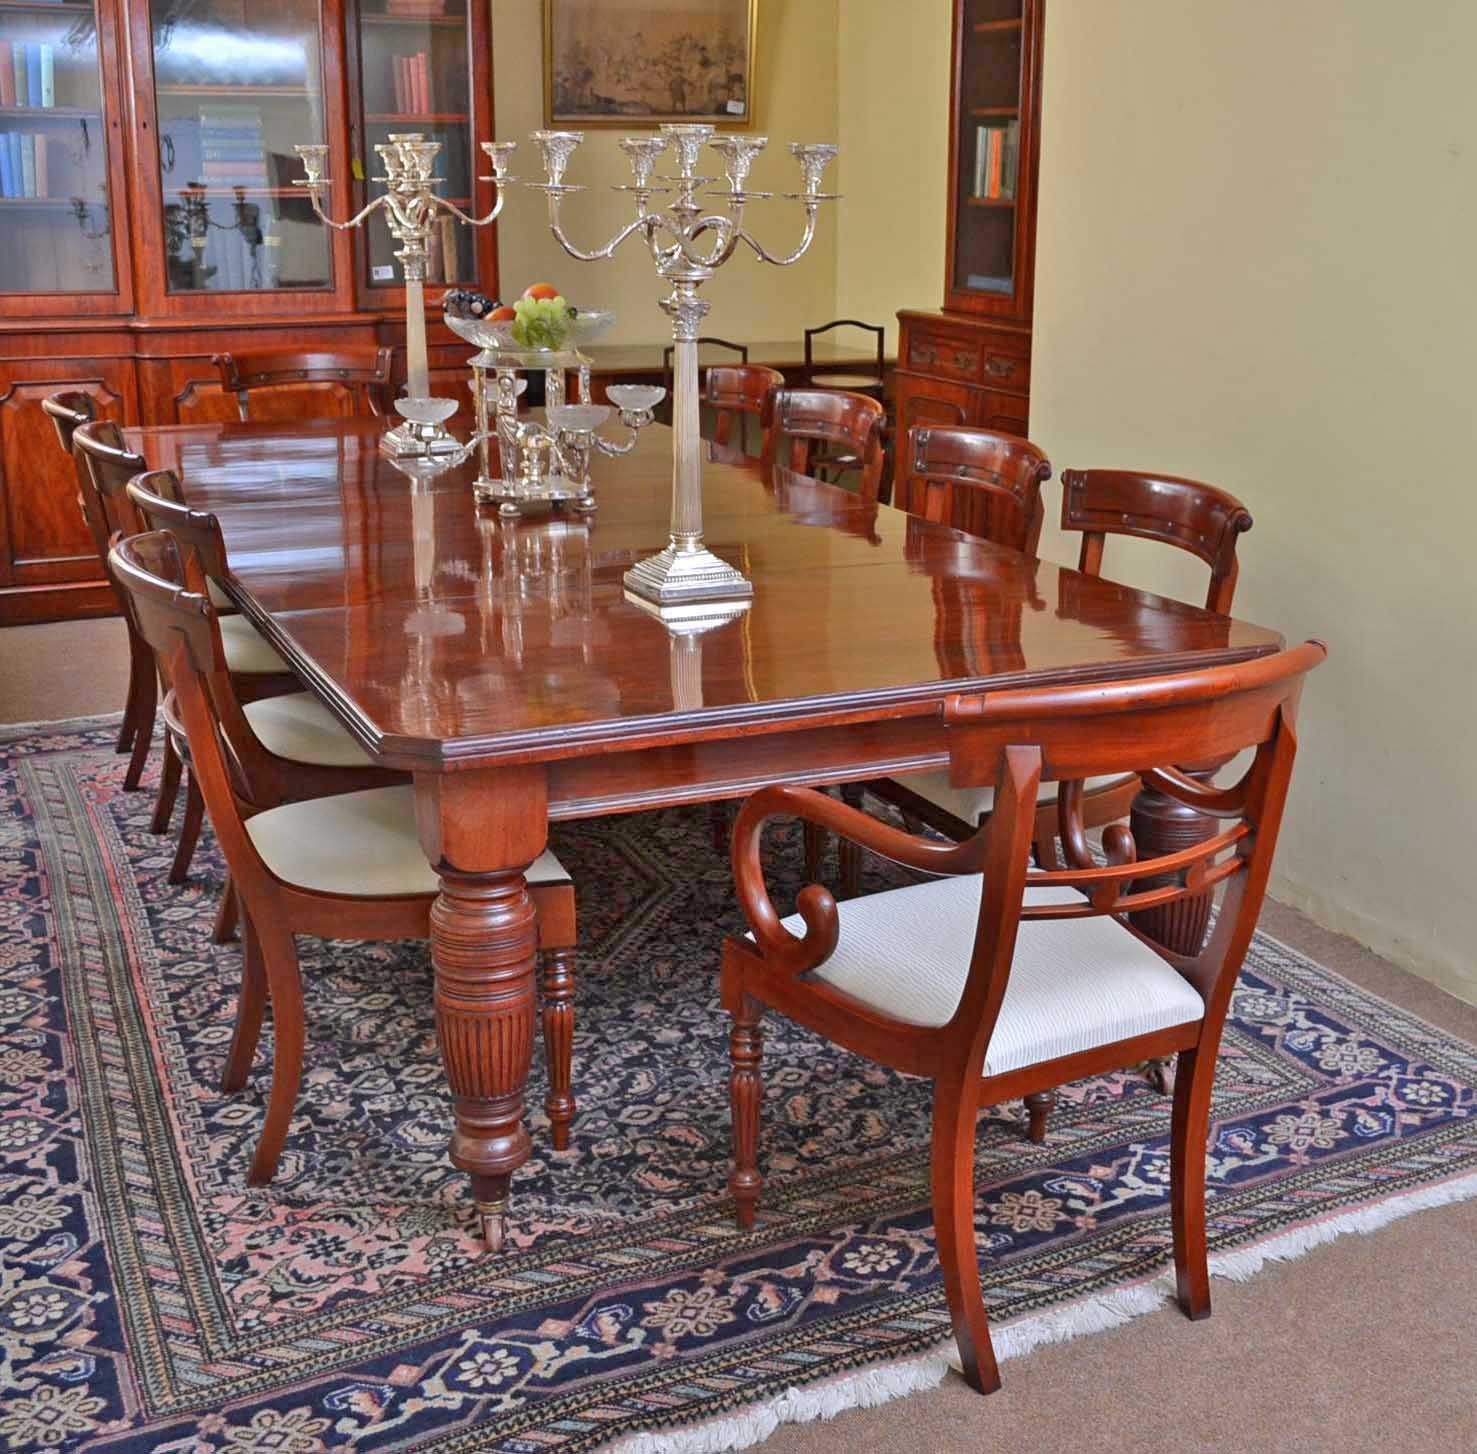 Antique Dining Room Table Chairs: Dining Tables And Chairs